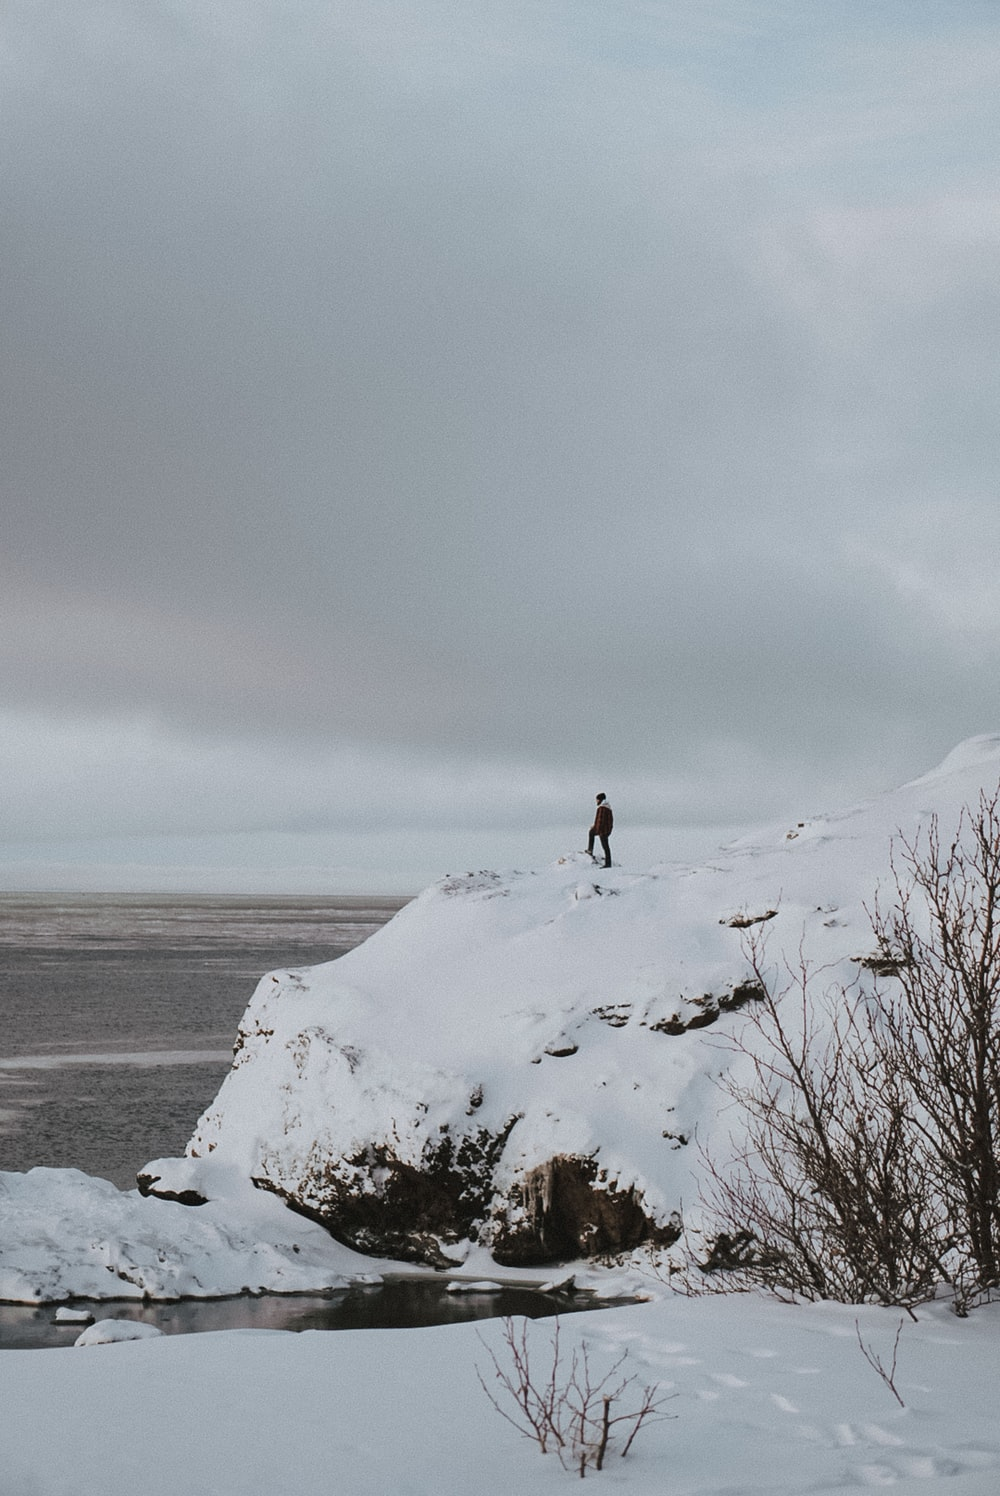 man standing on snow-covered mountain cliff facing ocean